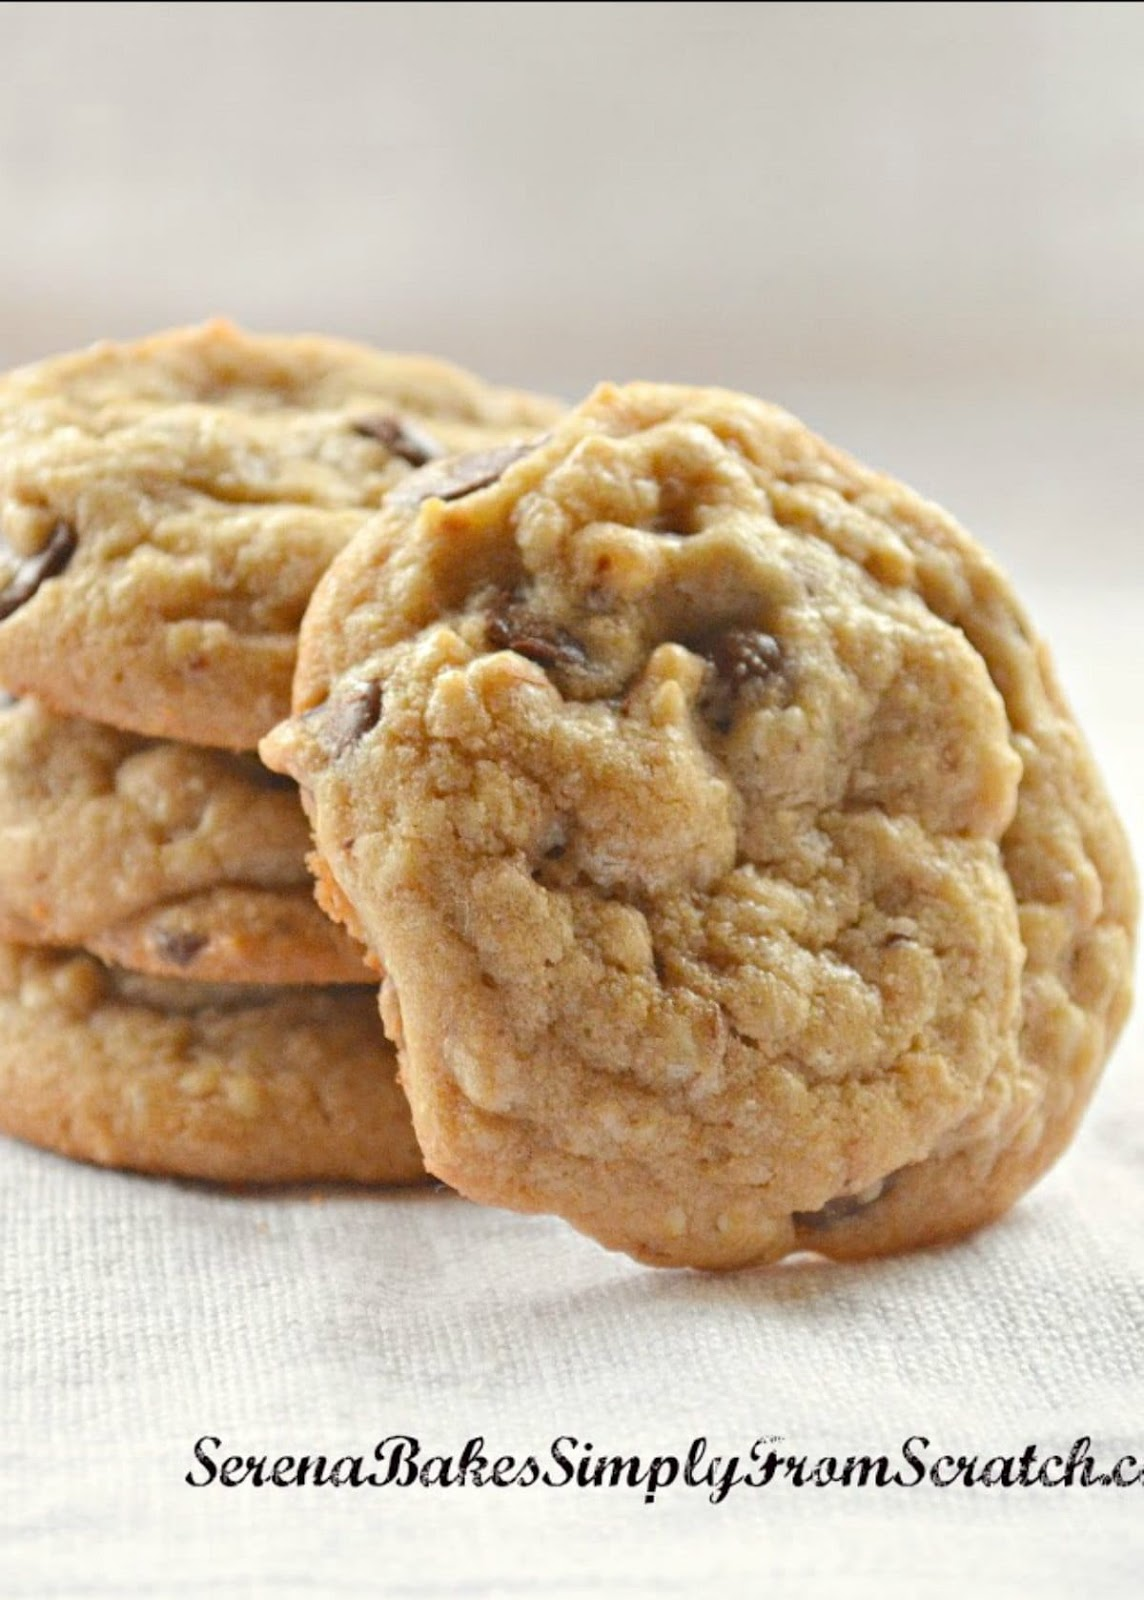 The Best Chocolate Chip Cookie Recipe are soft and chewy with a crispy edge! Perfect Chocolate Chip Cookies every time from Serena Bakes Simply From Scratch.